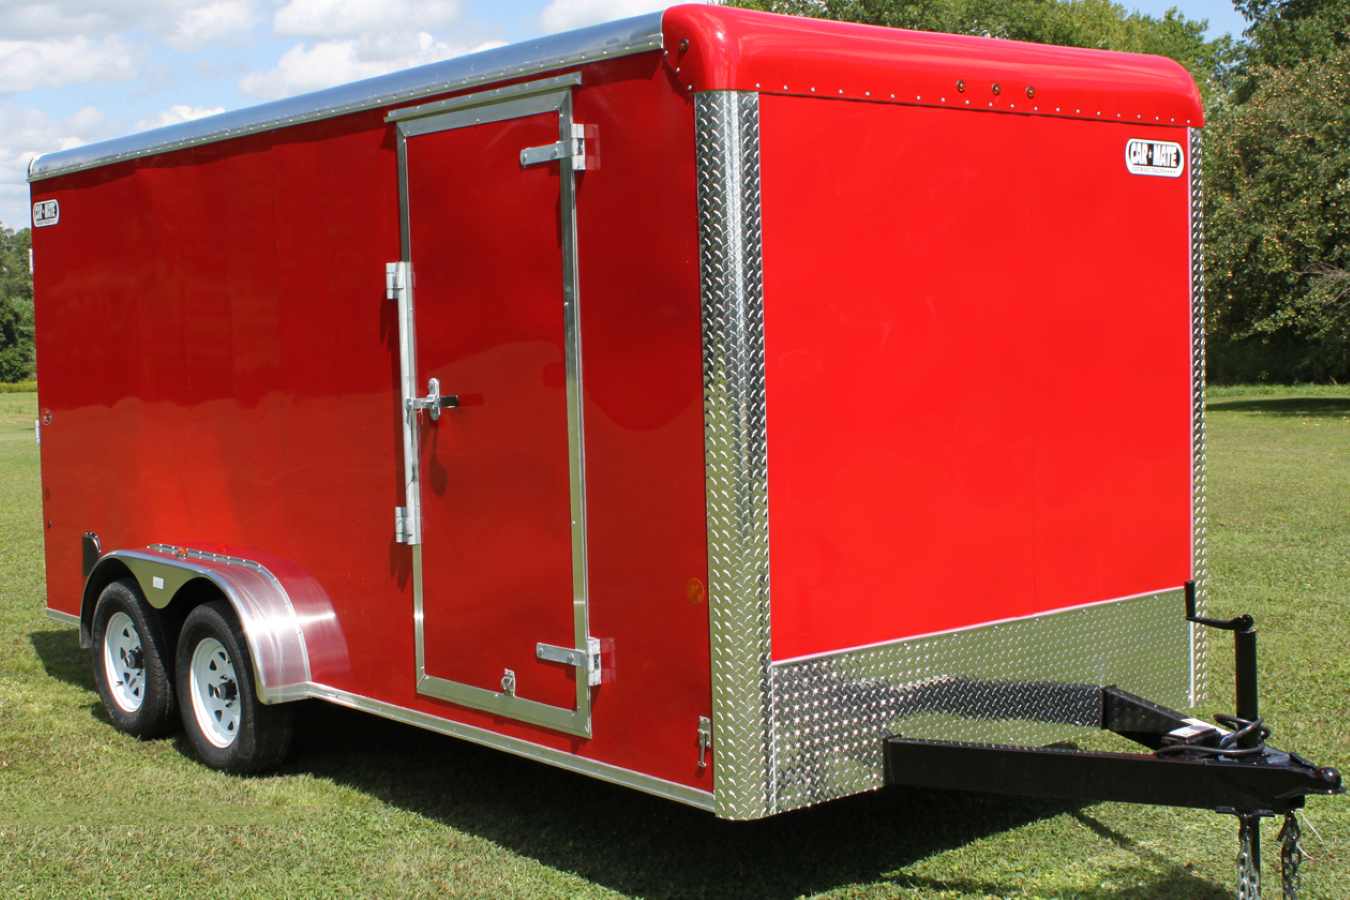 Chipper Truck For Sale >> Enclosed Cargo Trailers For Sale | T.P. Trailers, Inc.